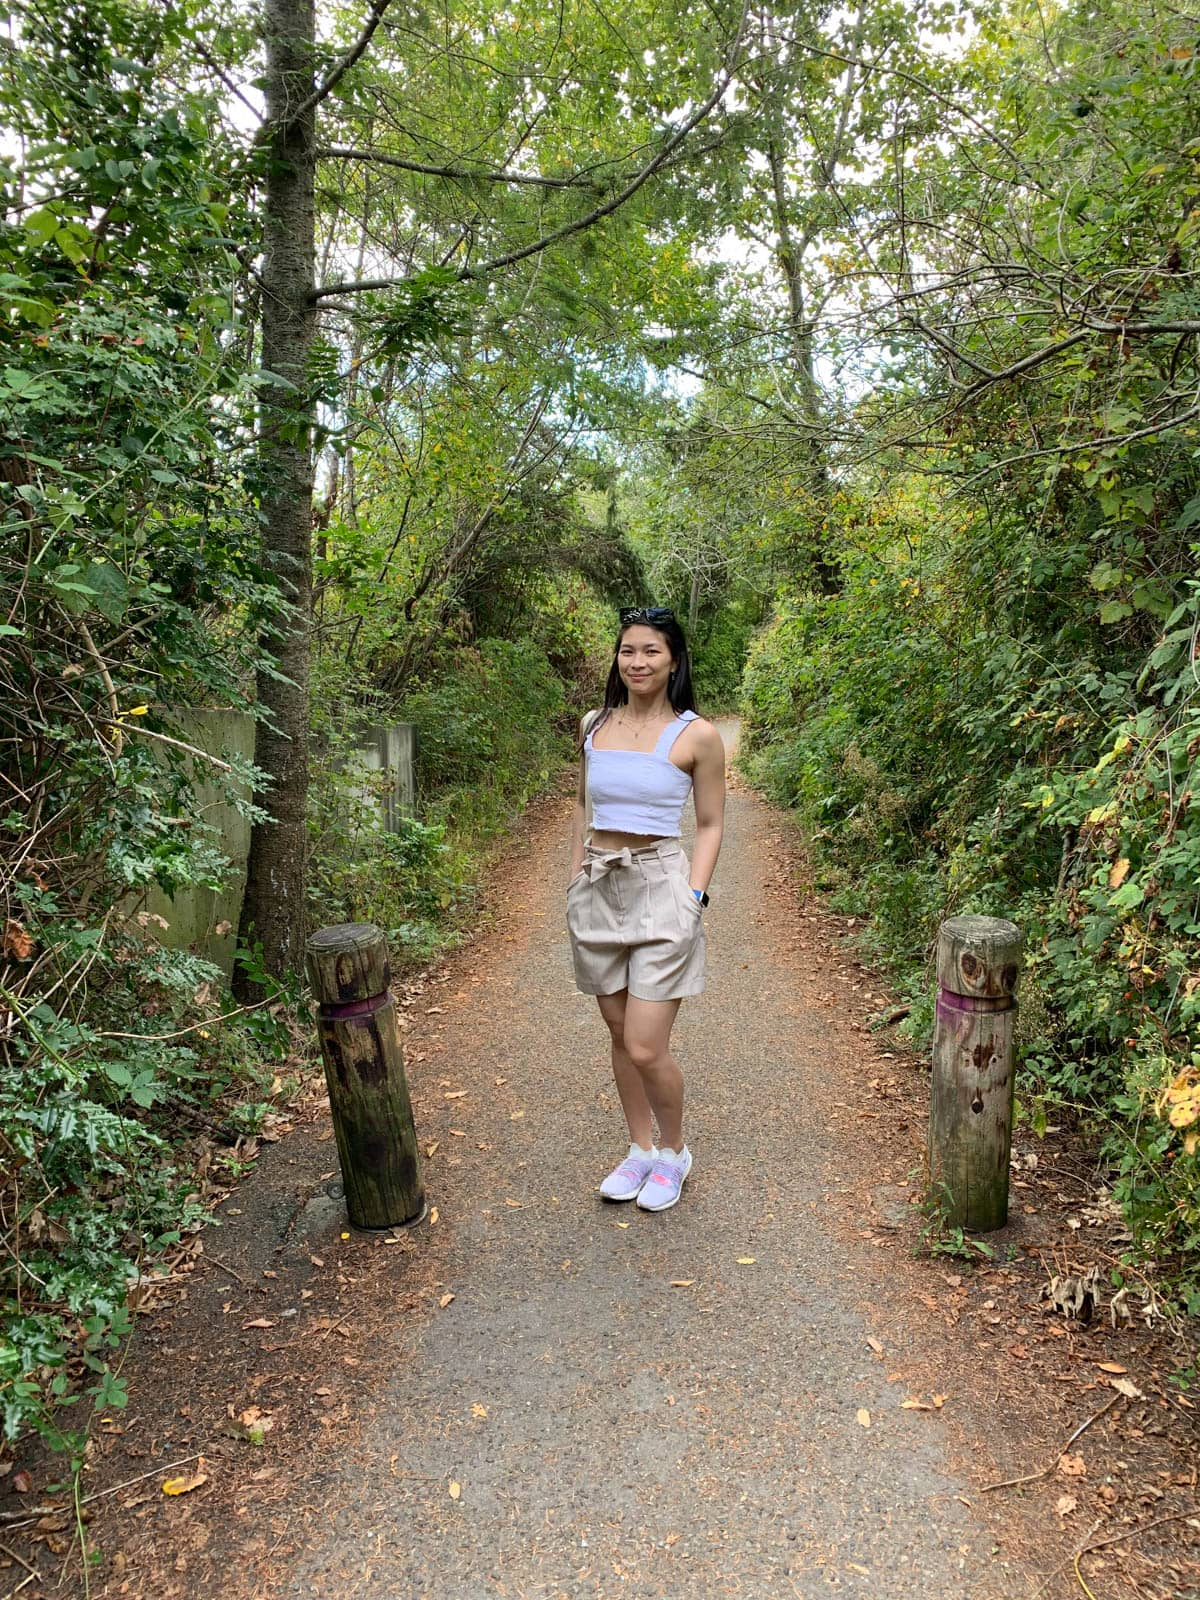 A woman with dark hair standing in the middle of a walking trail. Green shrubbery is visible on either side of her. She is wearing a white strapless top and natural coloured shorts, and has her hands in her pockets.